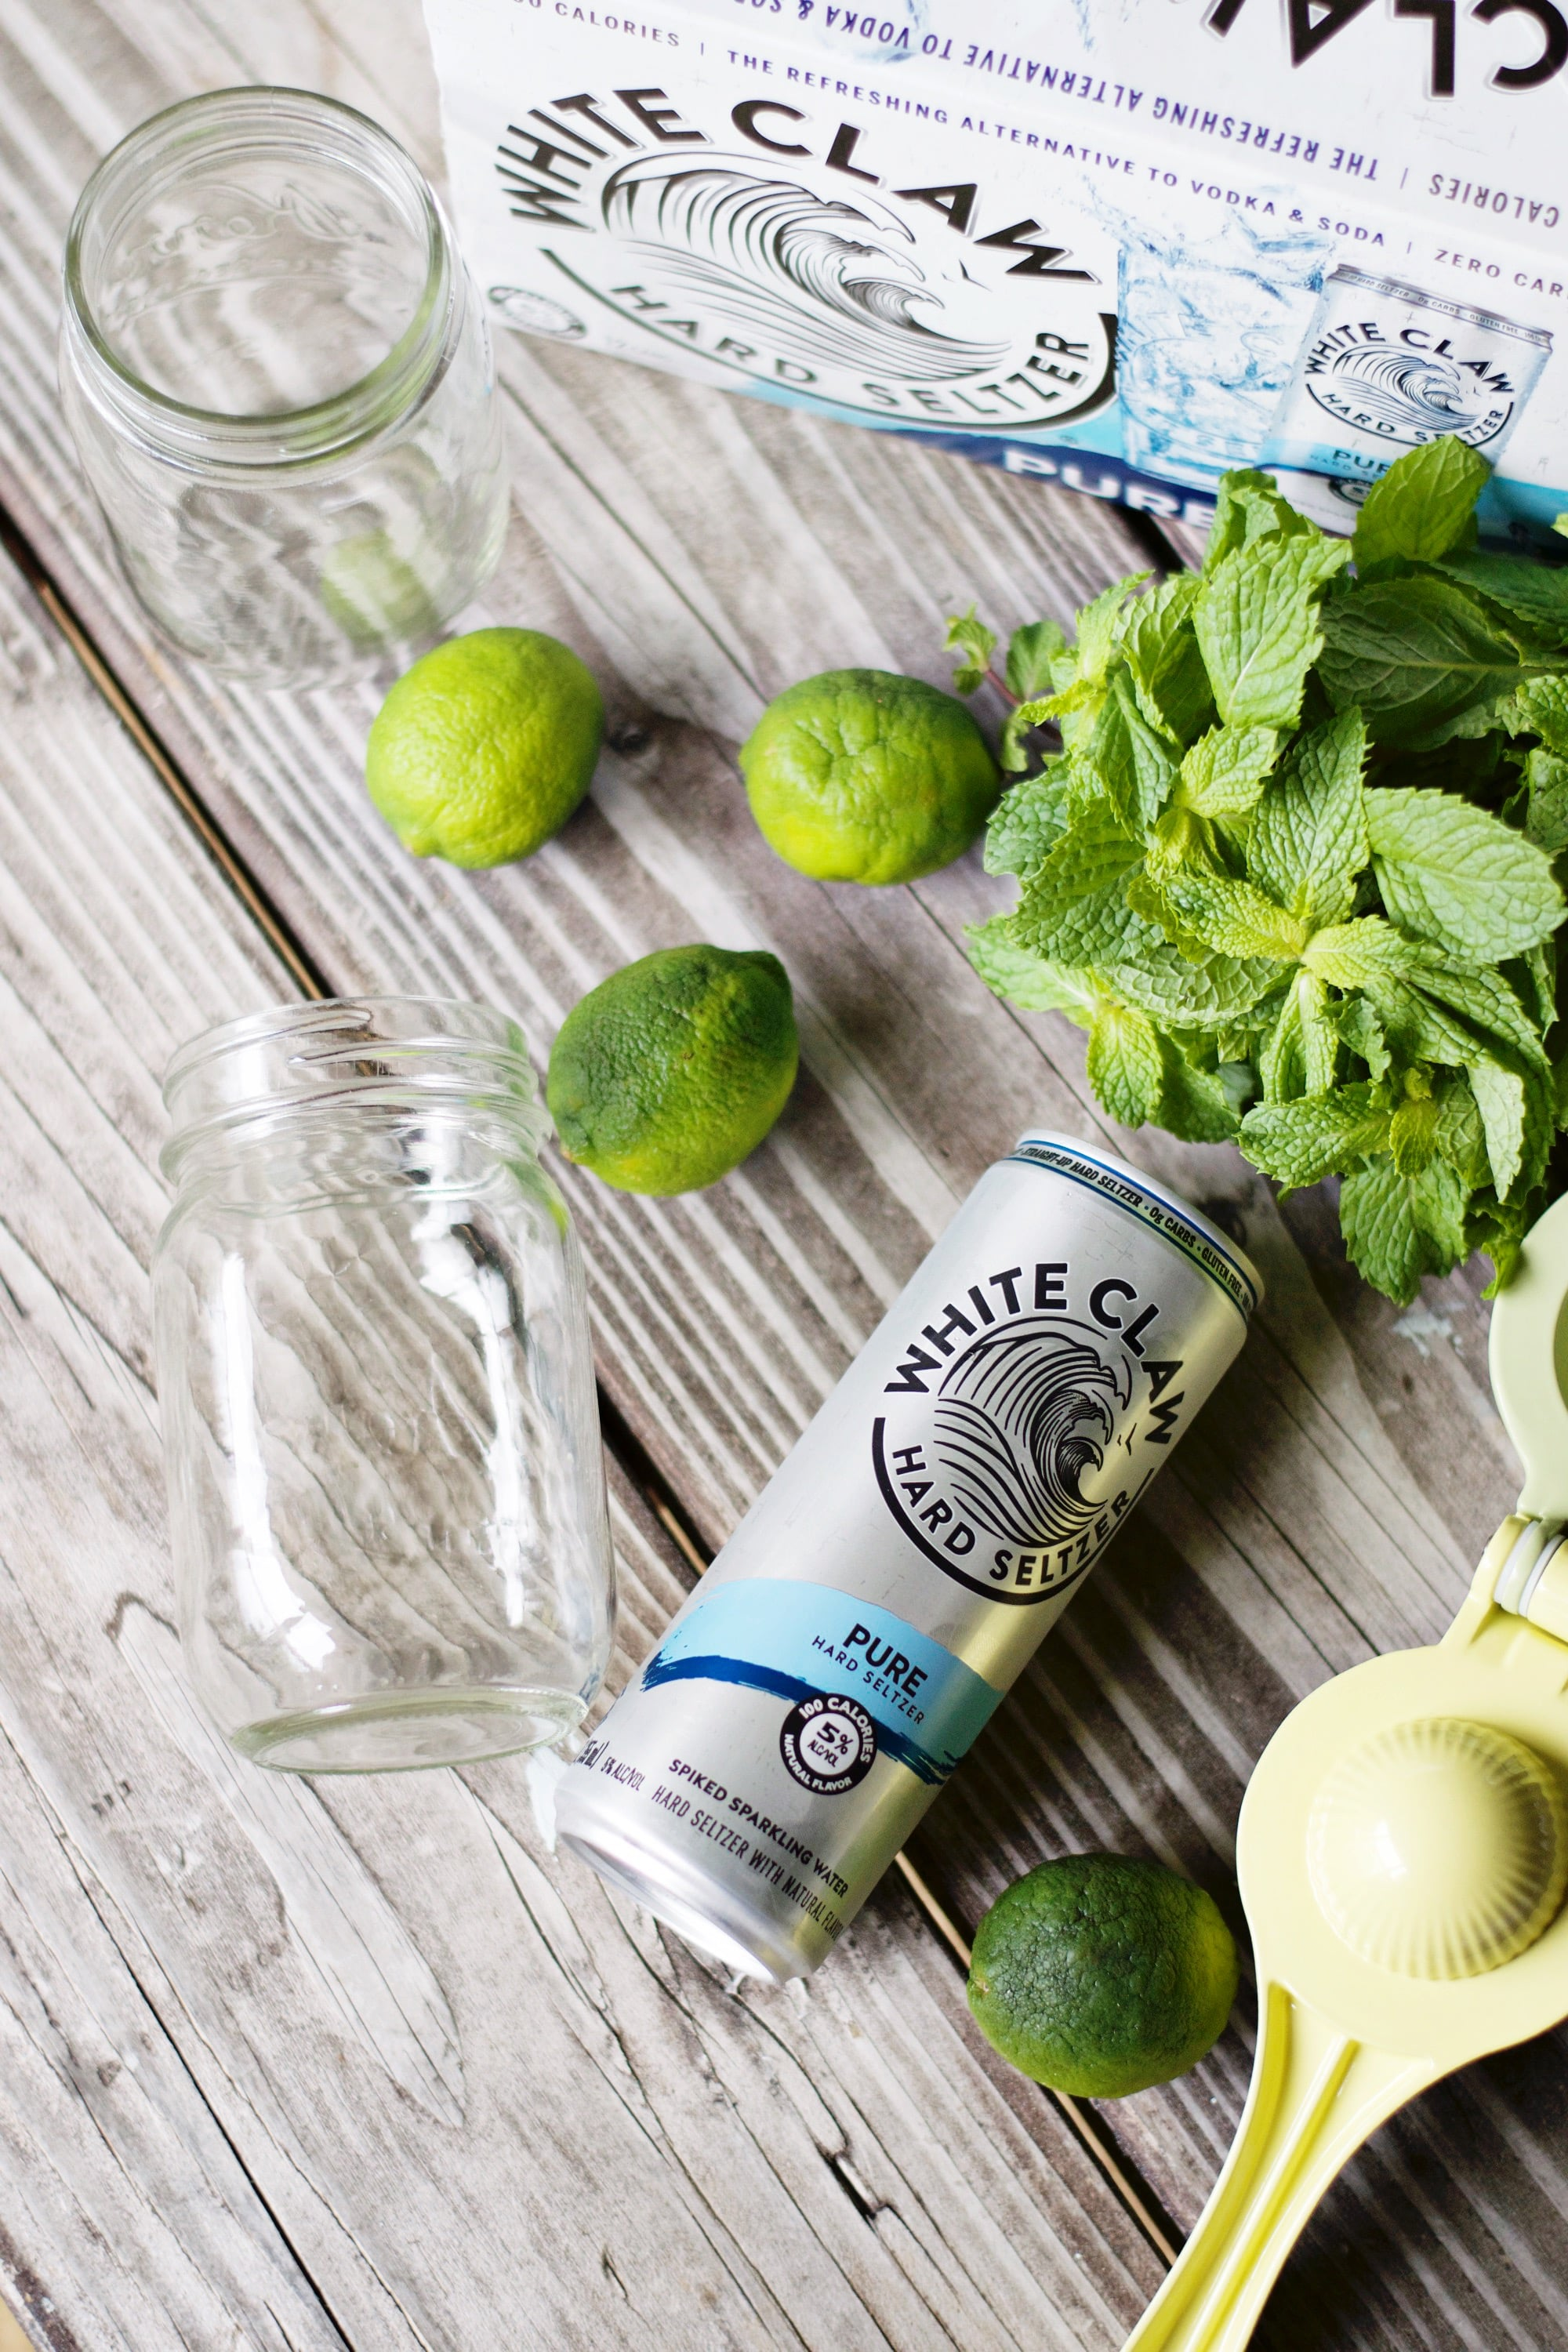 Mango Lime Spritz - An easy and light mango cocktail made with White Claw Pure Hard Seltzer and infused with lime and mint! | White Claw Hard Seltzer Cocktails - Spiked Seltzer cocktails - Mango Cocktails - Summer Cocktails - Easy Summer Cocktail Recipes - Lime and Mint Cocktail